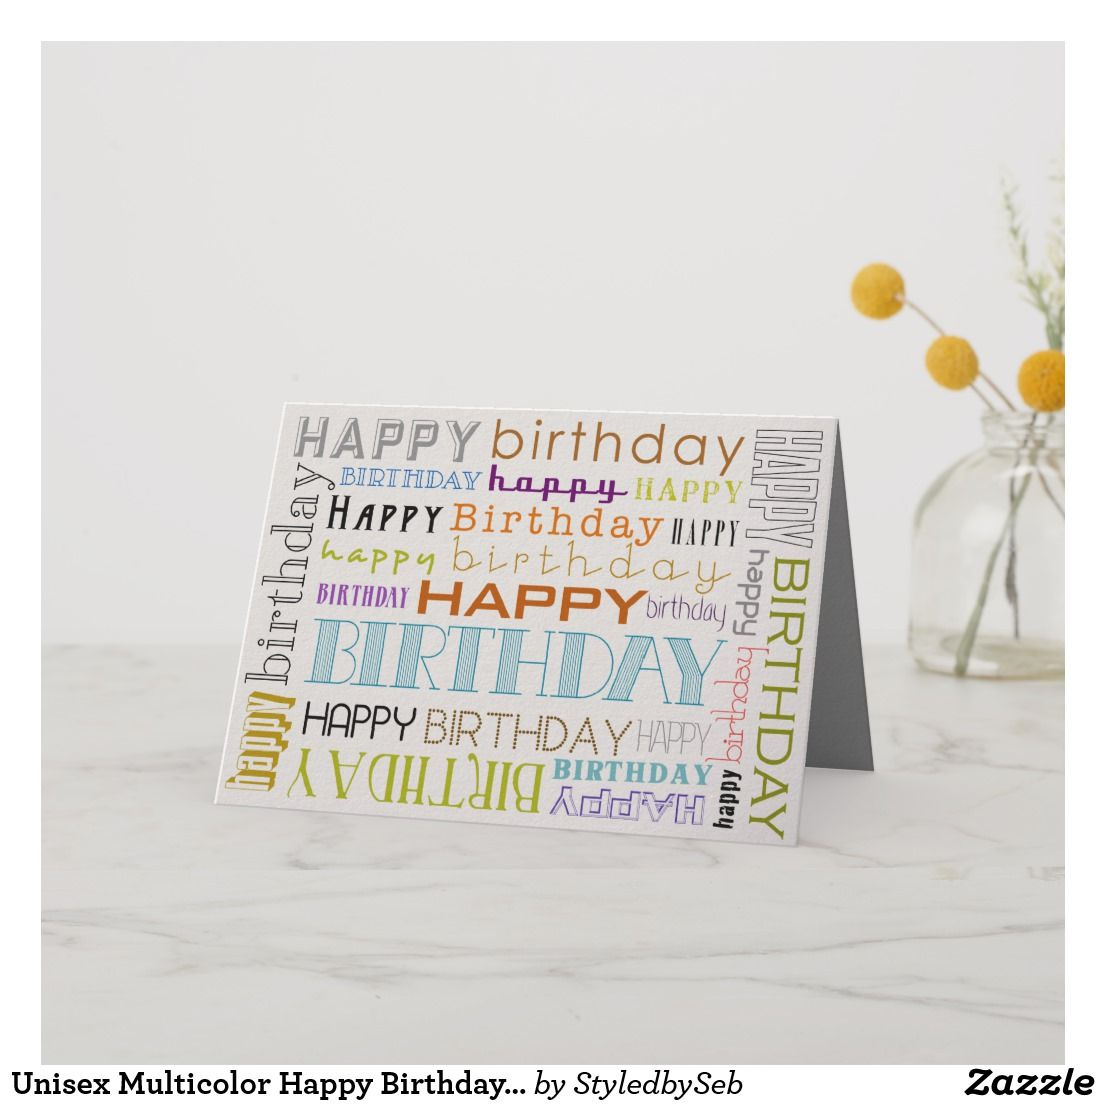 Unisex multicolor happy birthday text bday card birthday cards unisex multicolor happy birthday text bday card birthday cardsfunny birthday cardsgreeting cards m4hsunfo